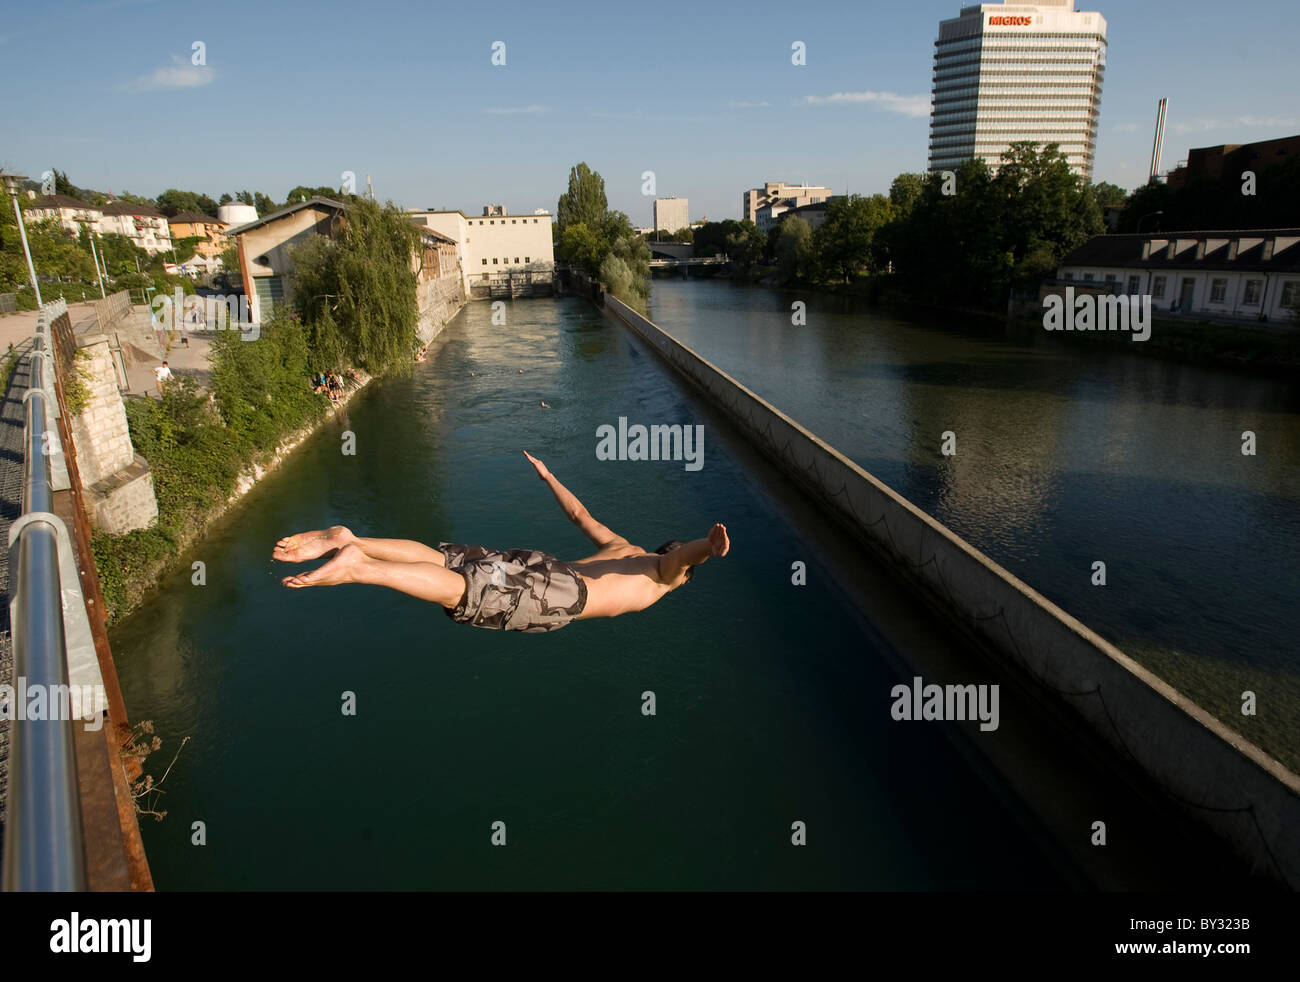 Jumping into the Limmat River in Lower Letten bathing place, Zurich, Switzerland - Stock Image